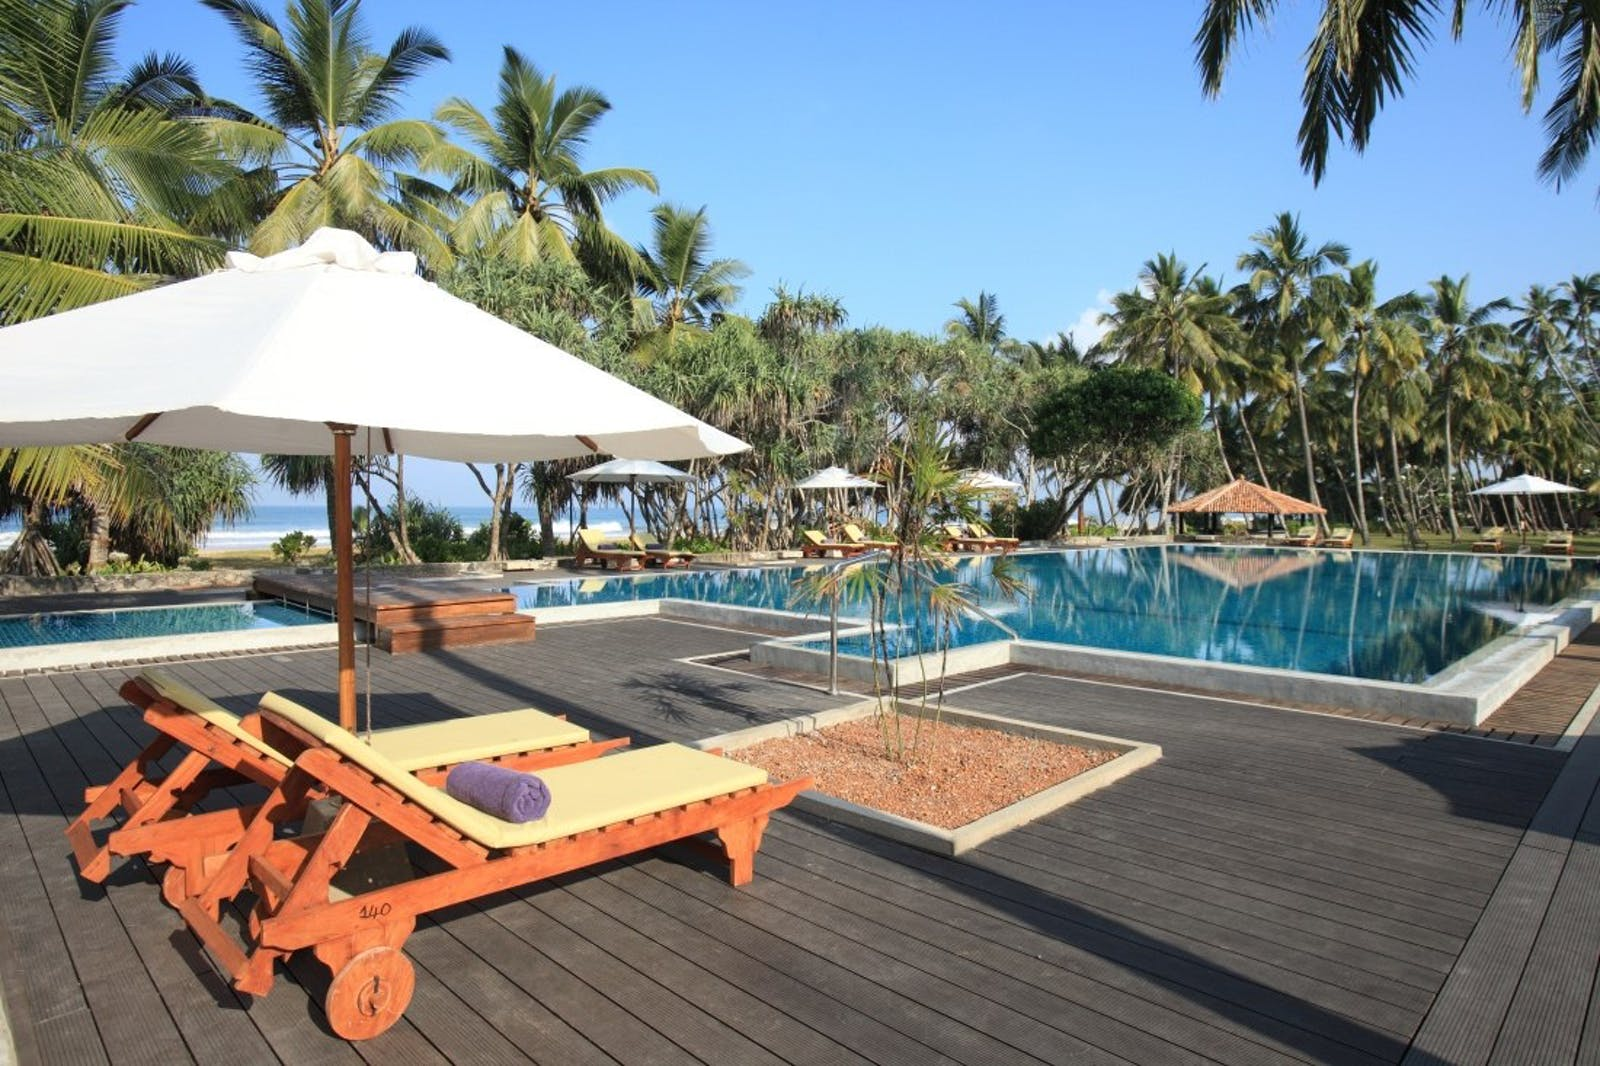 Swimming pool at Avani Bentota, Sri Lanka